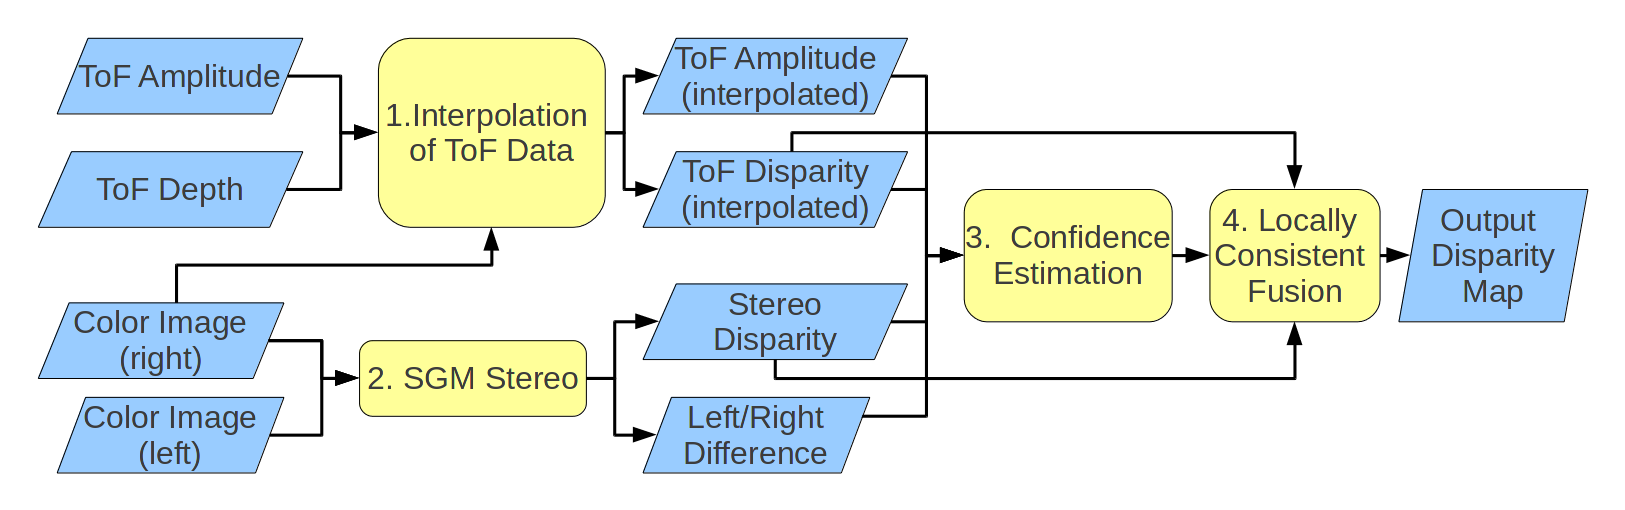 Deep Learning for Confidence Information in Stereo and ToF Data Fusion